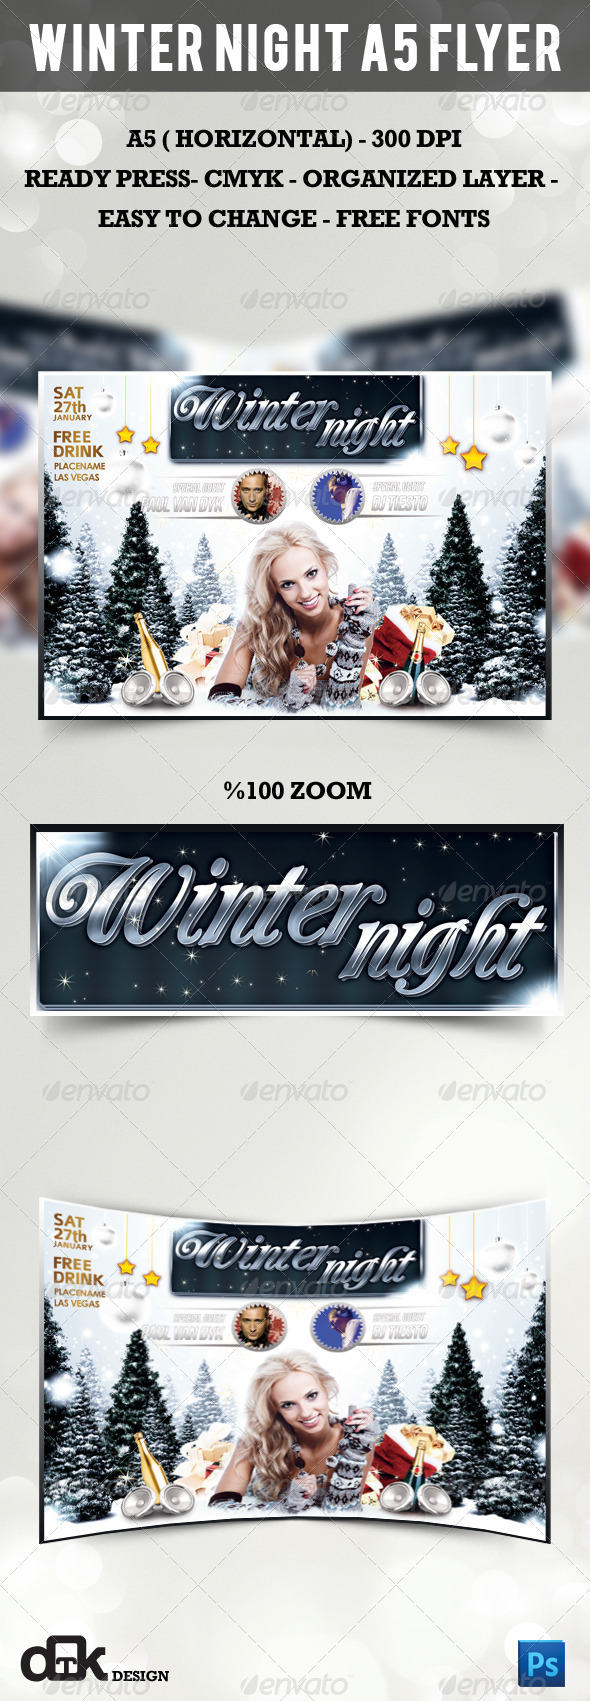 Winter Night A5 Flyer - Clubs & Parties Events